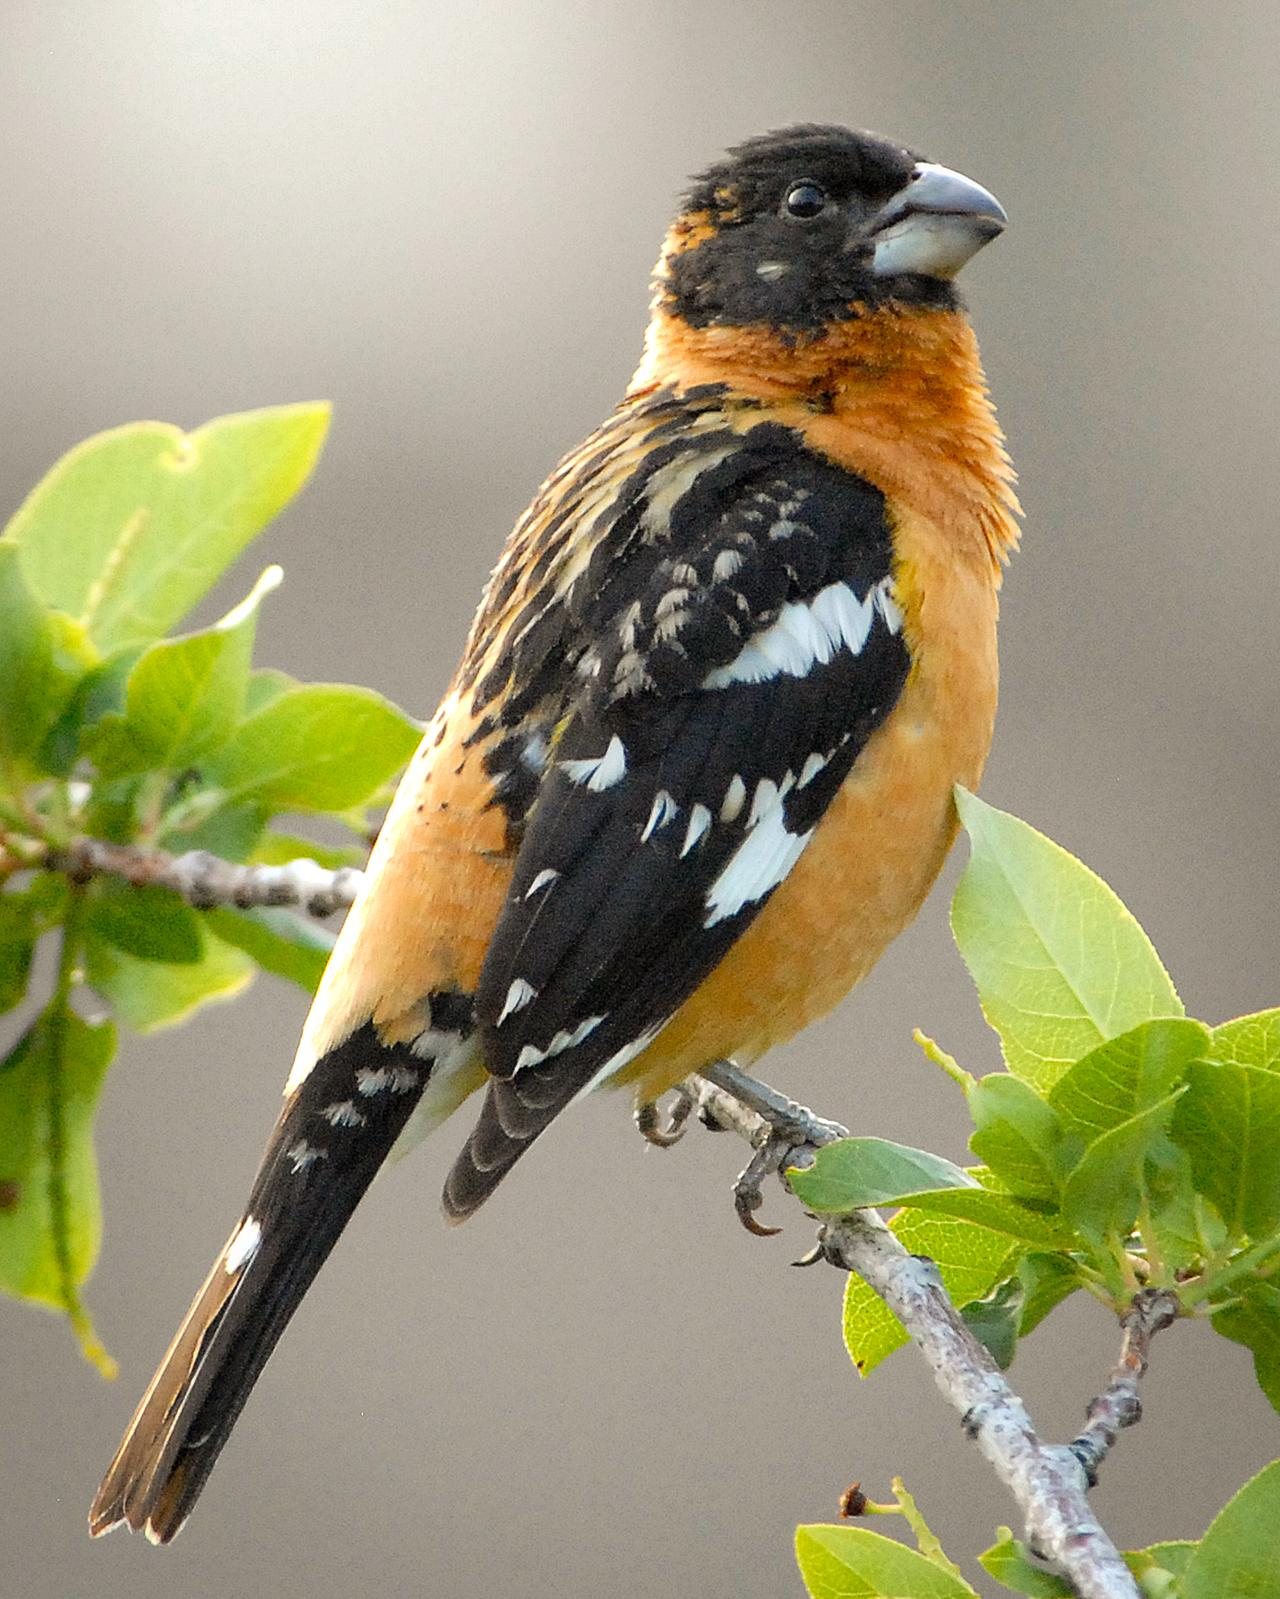 Black-headed Grosbeak Photo by Mike Fish